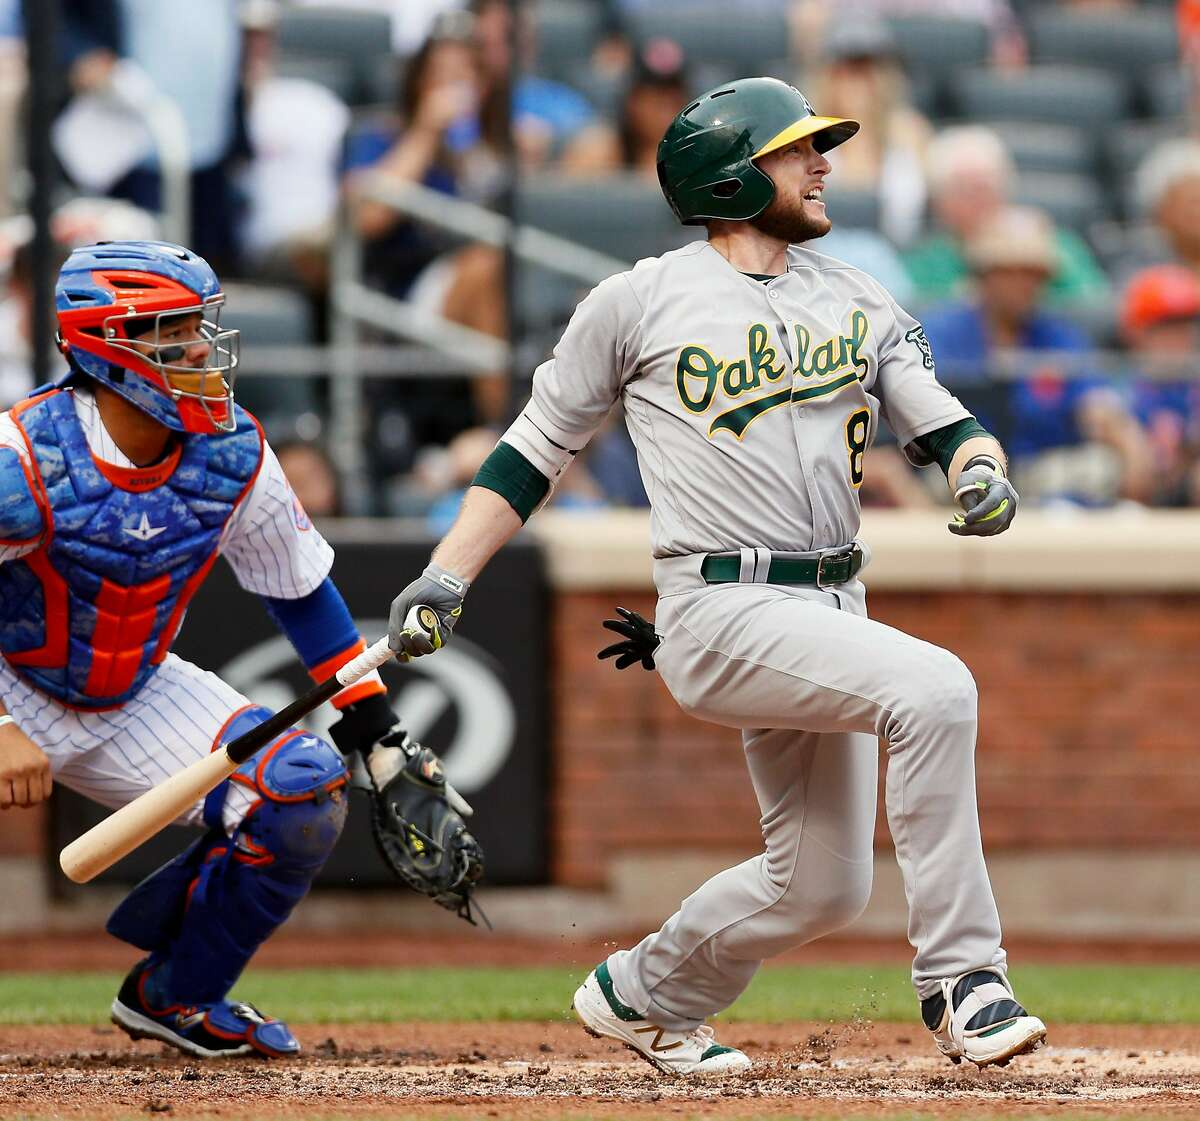 Jed Lowrie, who was an All-Star with the A's in 2018, returned to Oakland this season and will be the team's primary second baseman.